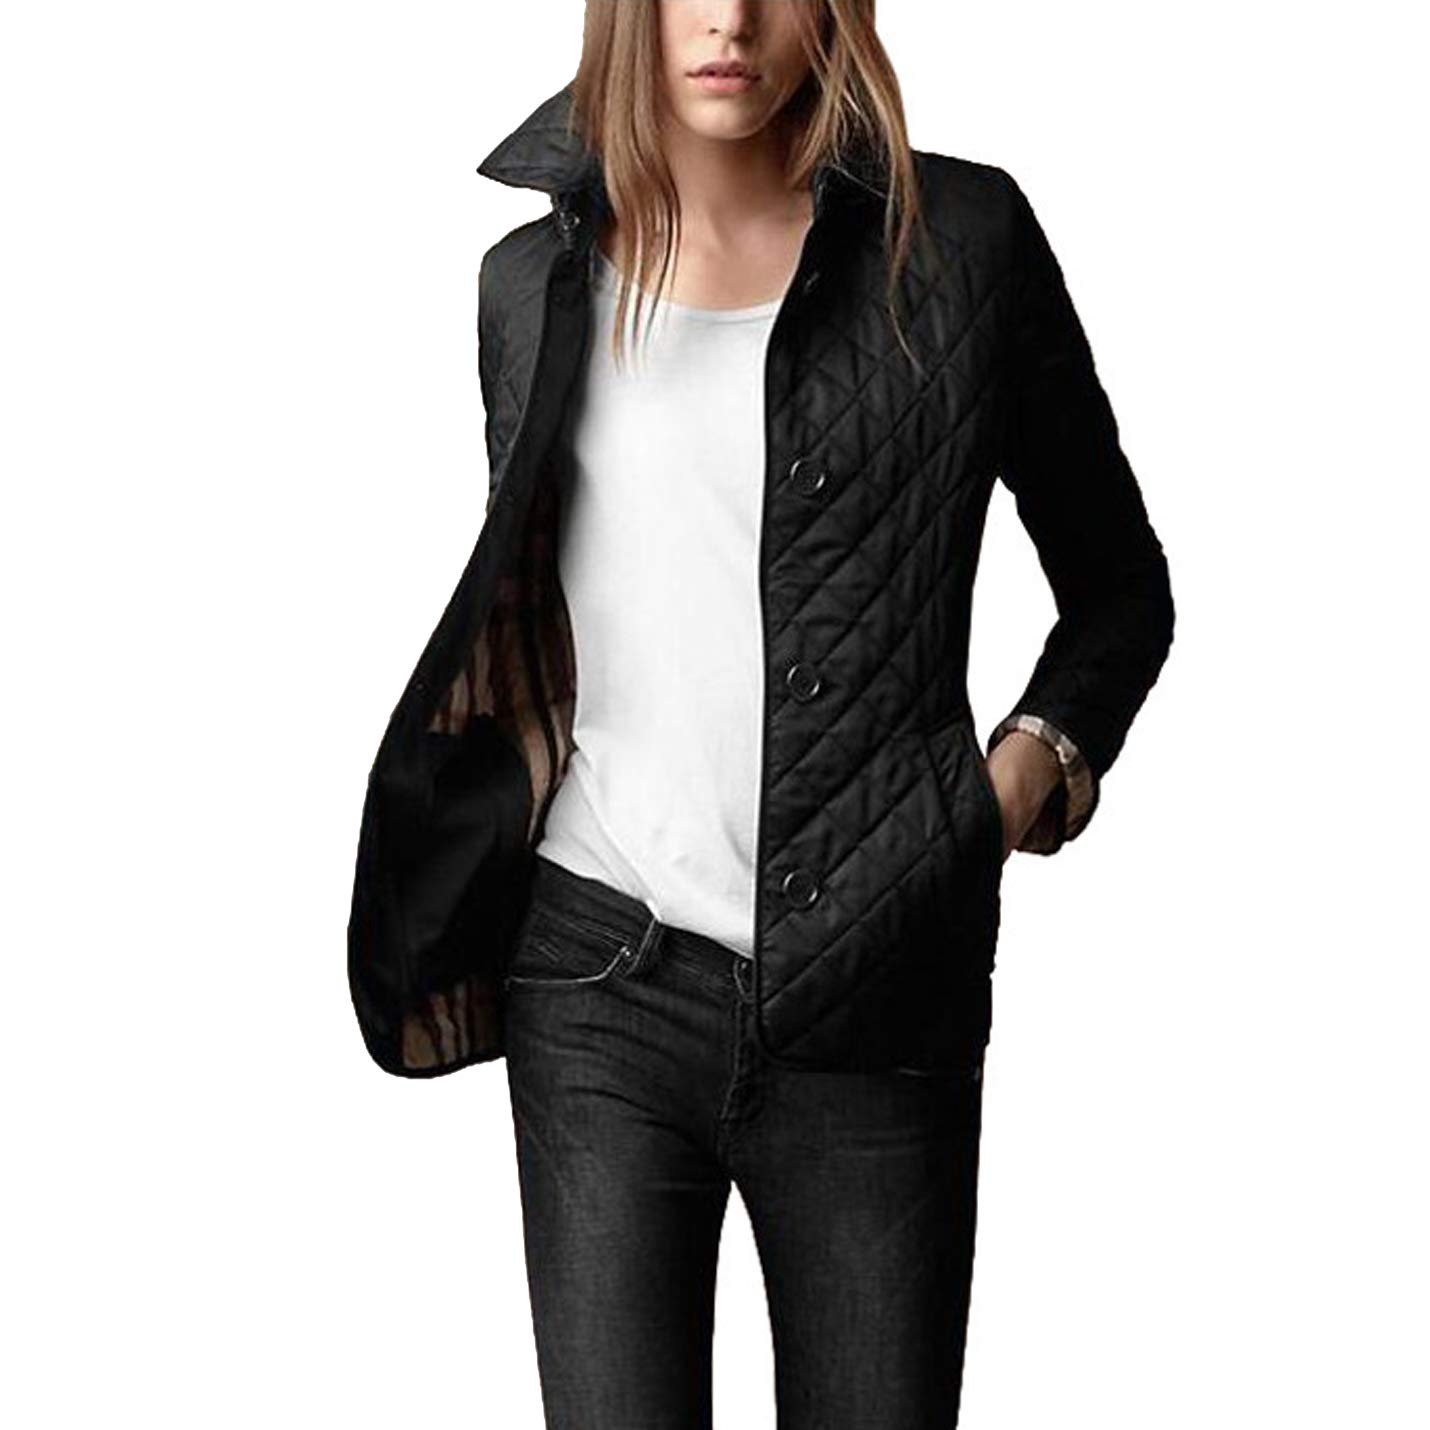 Flygo Women's Diamond Quilted Jacket Stand Collar Button Closure Coat with Pockets (Black, Medium) by Flygo